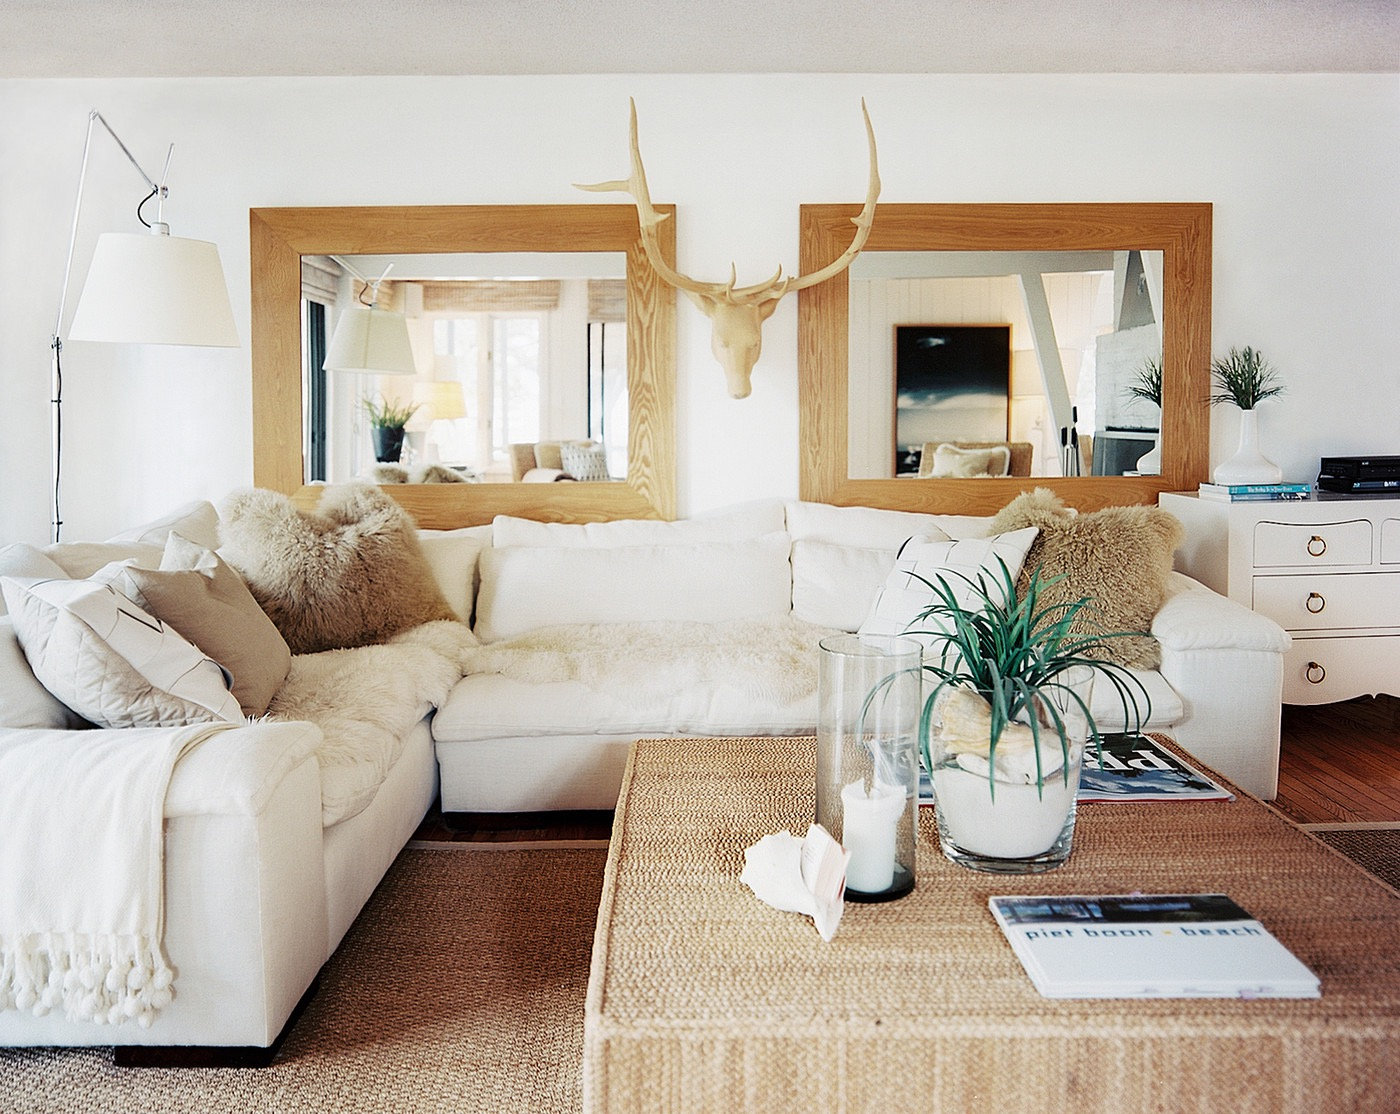 Elegant Decor For Rustic Living Room (Image 10 of 36)